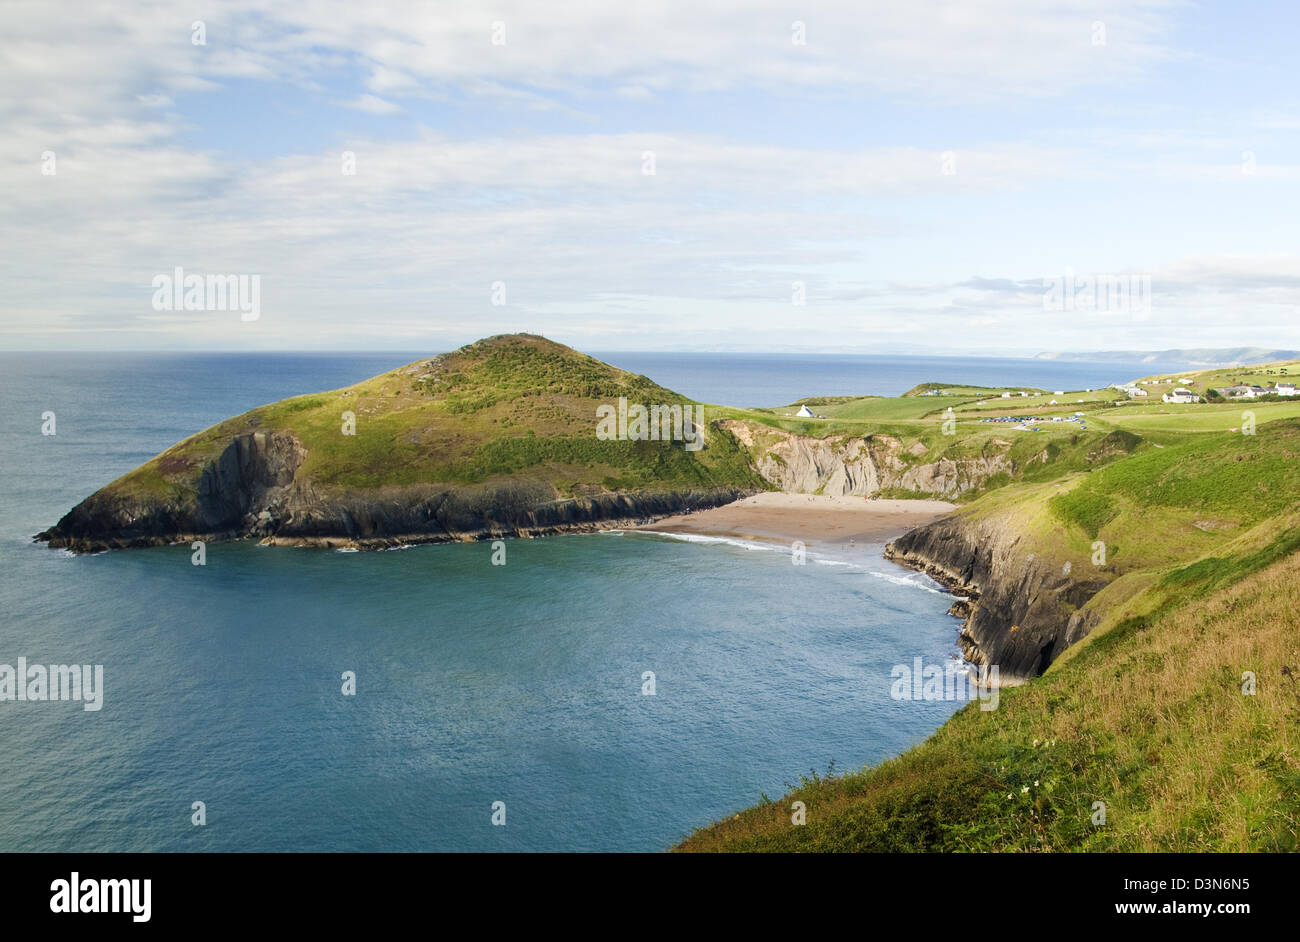 View of Foel-y-Mwnt and beach fron the Cardigan Coastal Path in Ceredigion Wales - Stock Image